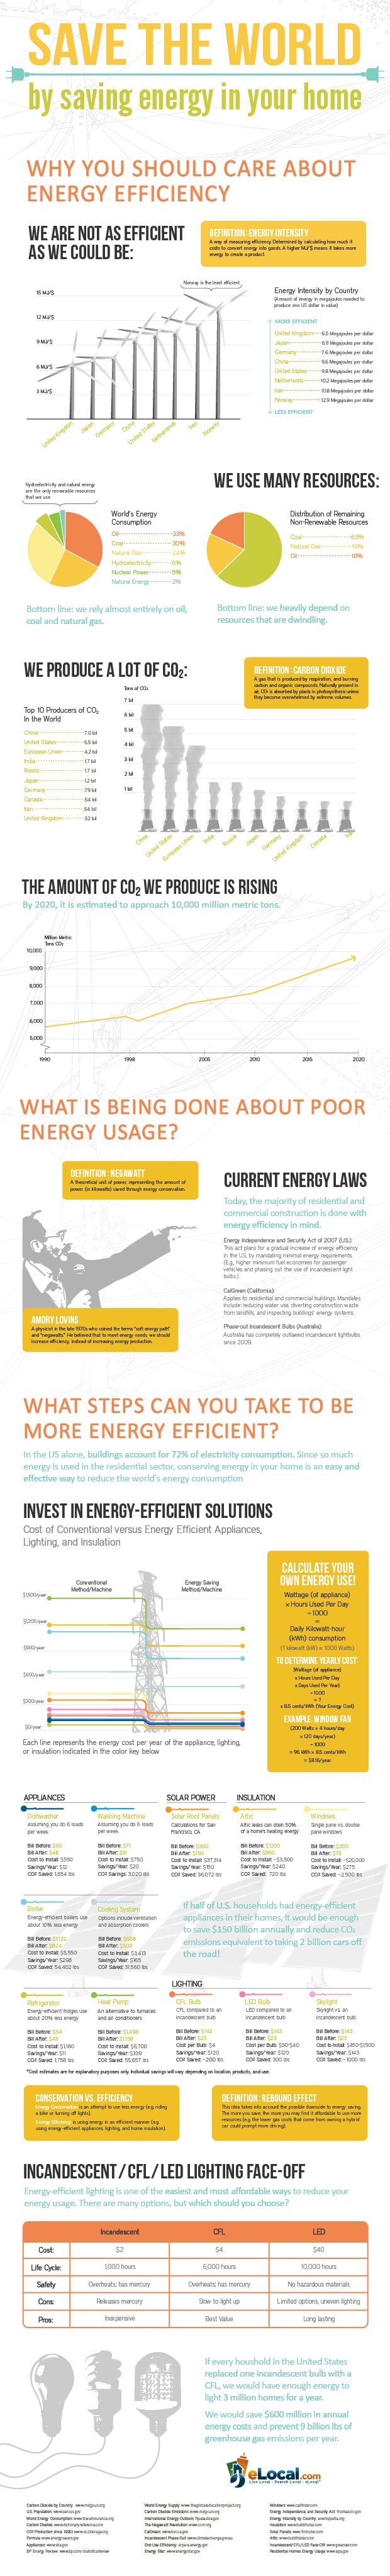 Save-The-World-By-Saving-Energy-Infographic-infographicsmania